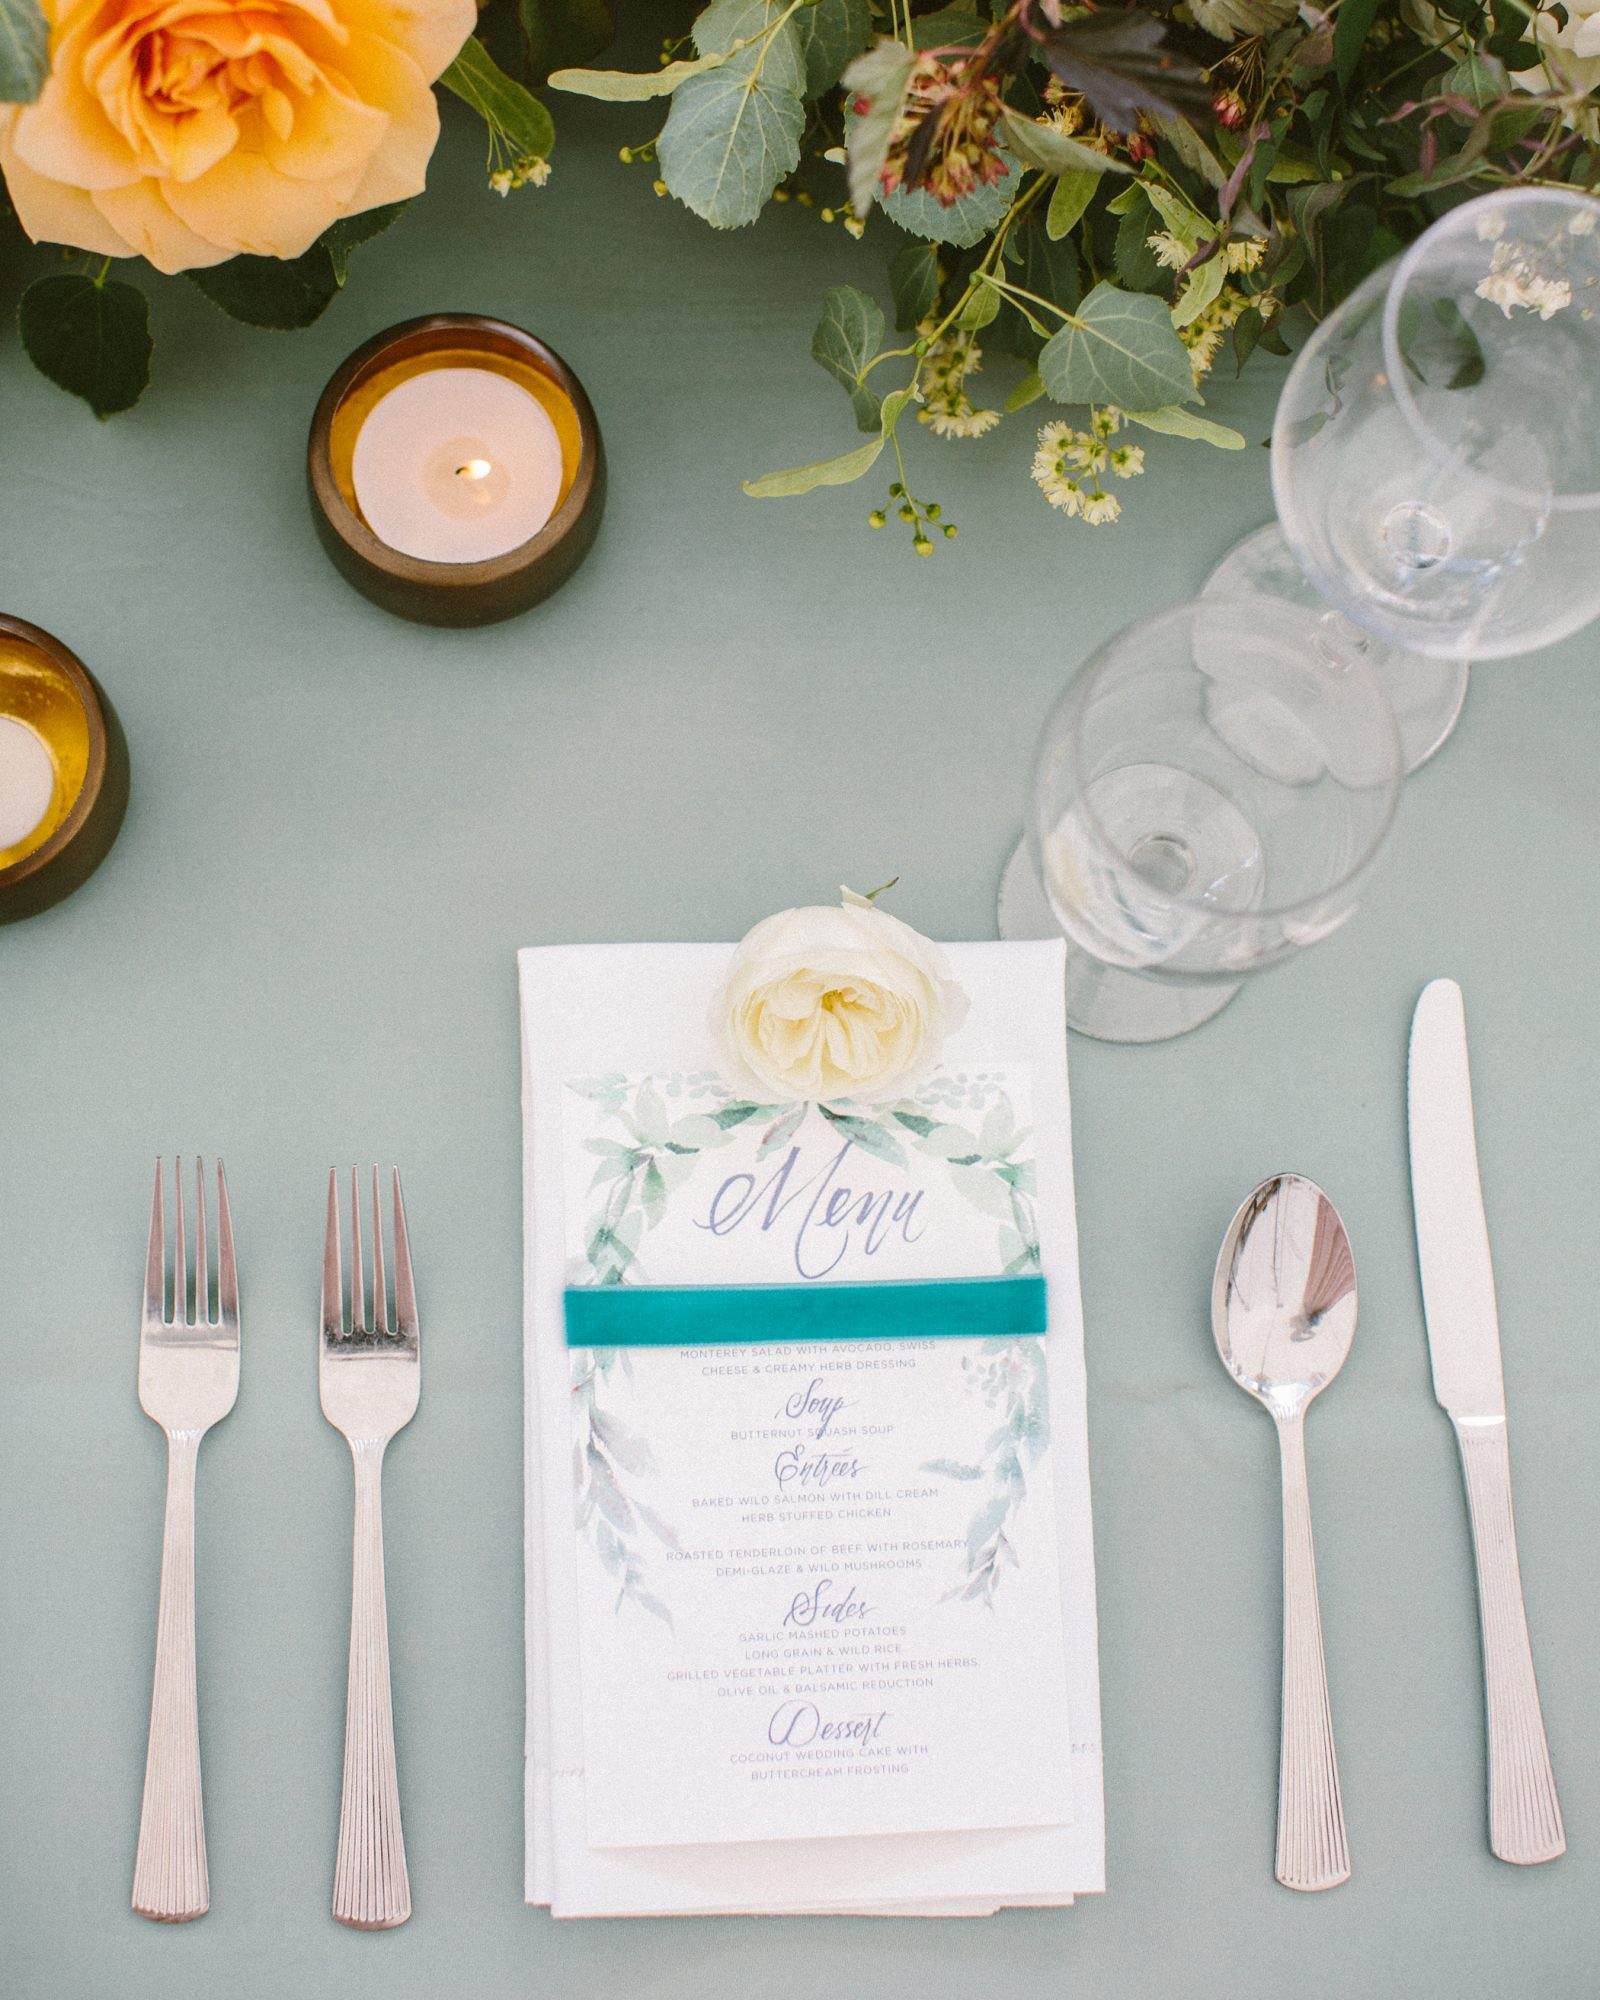 jamie-alex-wedding-placesetting-150-s111544-1014.jpg